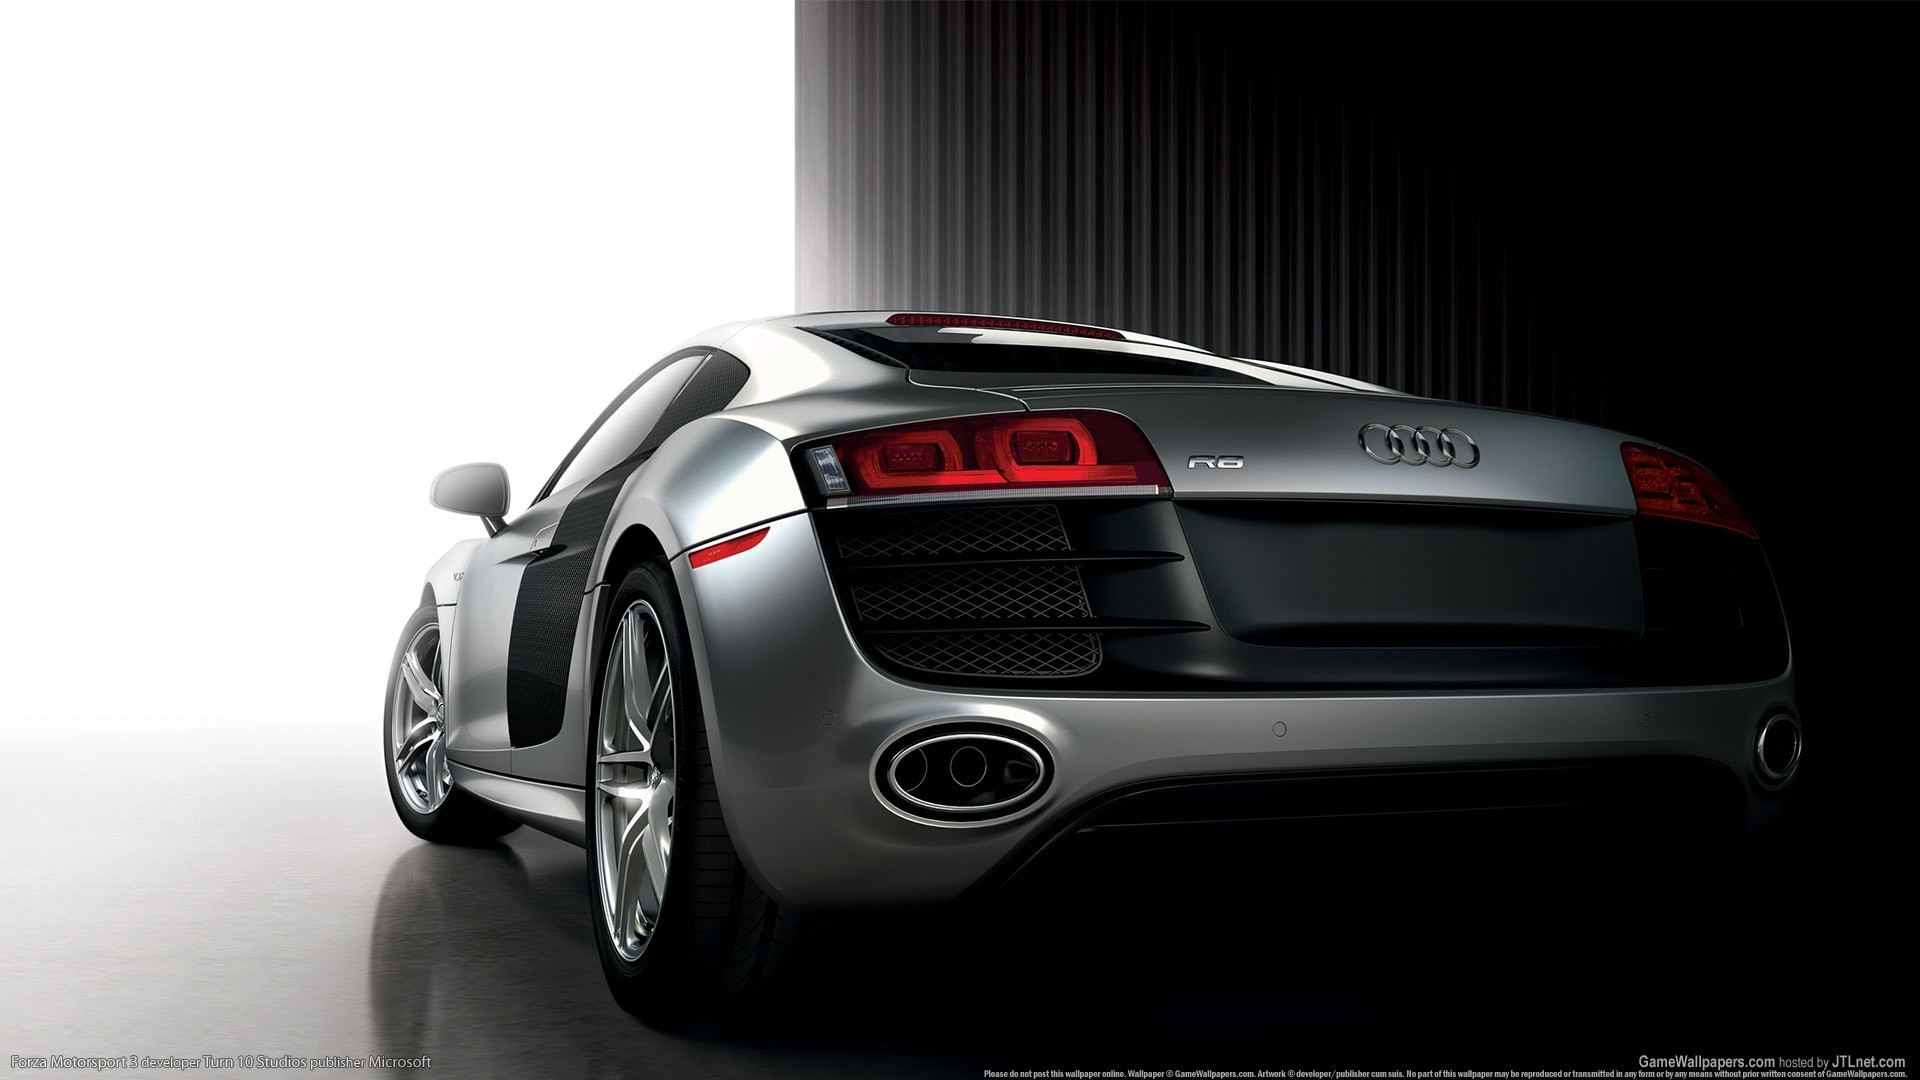 video games cars audi HD Wallpaper